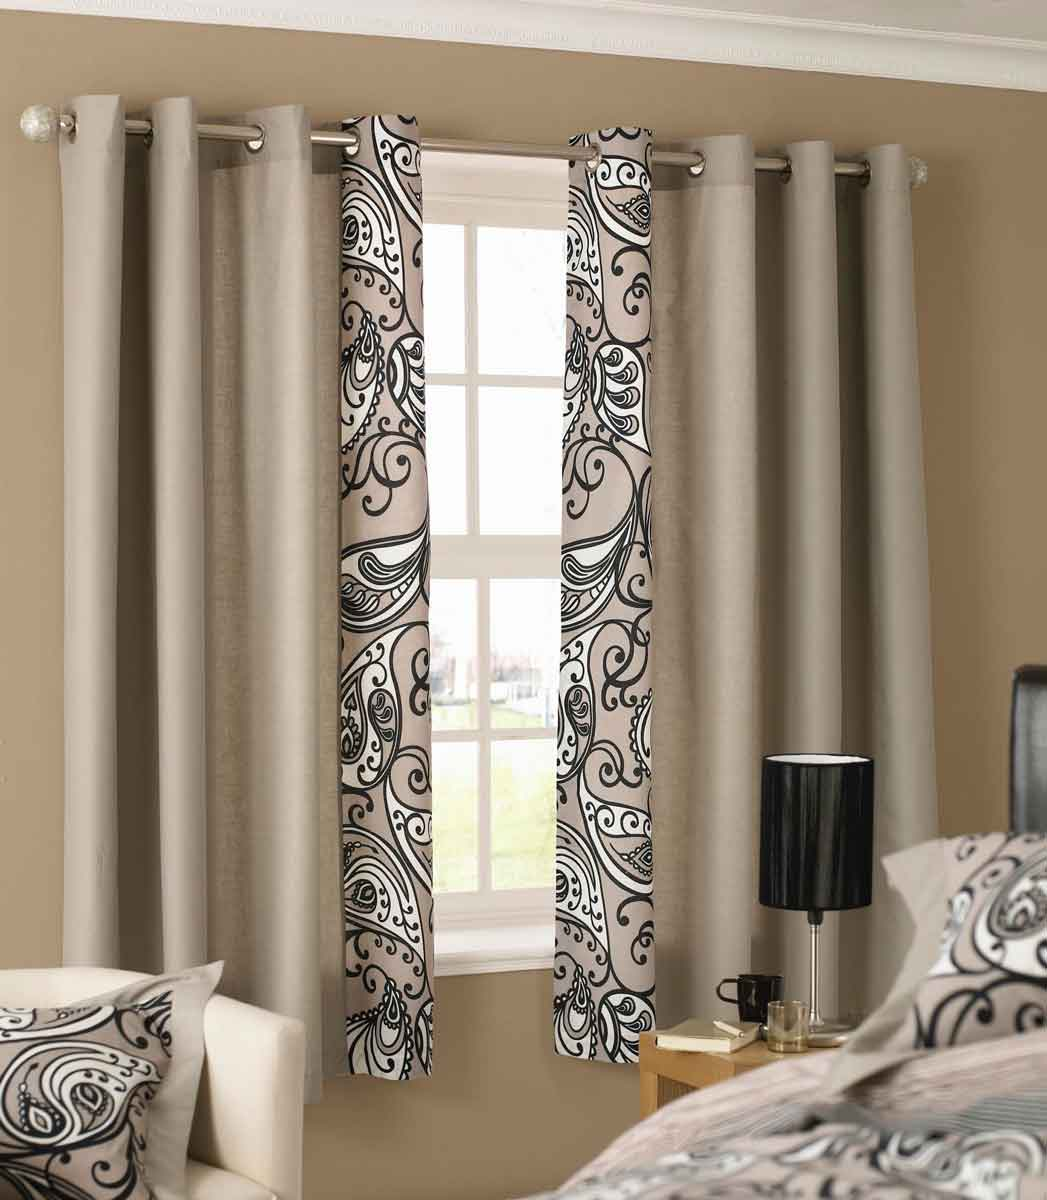 4 Tips To Properly Hang Curtains Curtains1